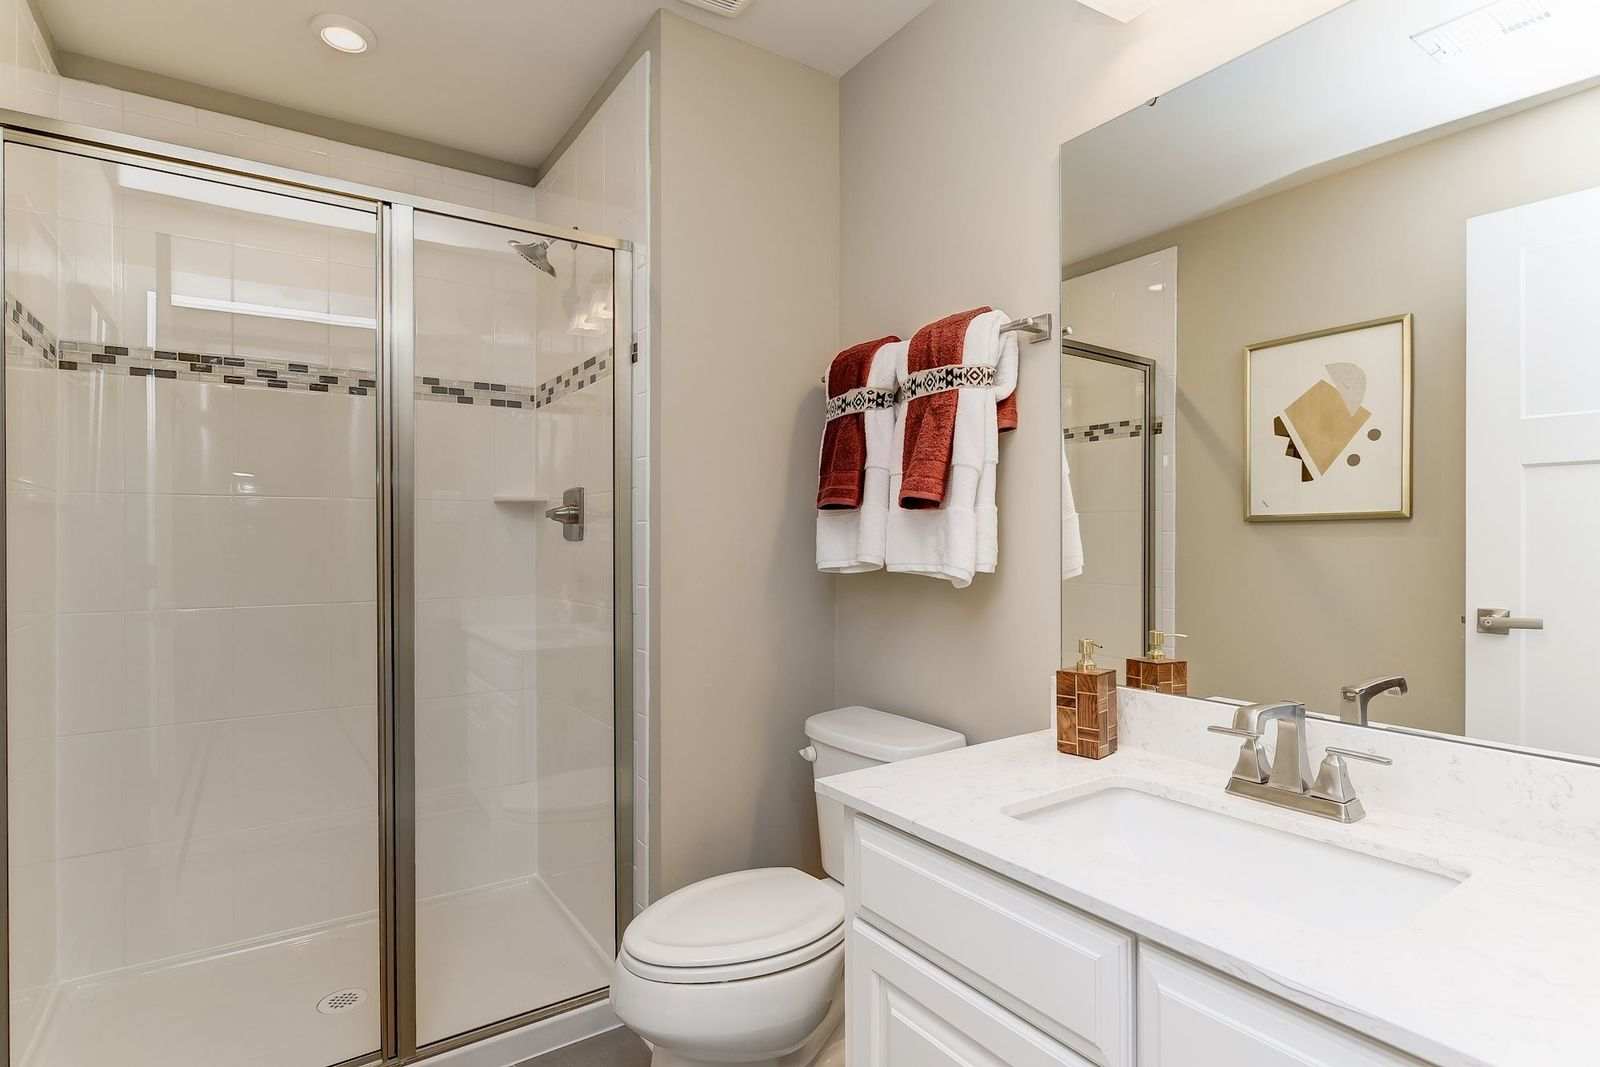 Bathroom-in-Foster-at-Landsdale Single Family Homes-in-Monrovia